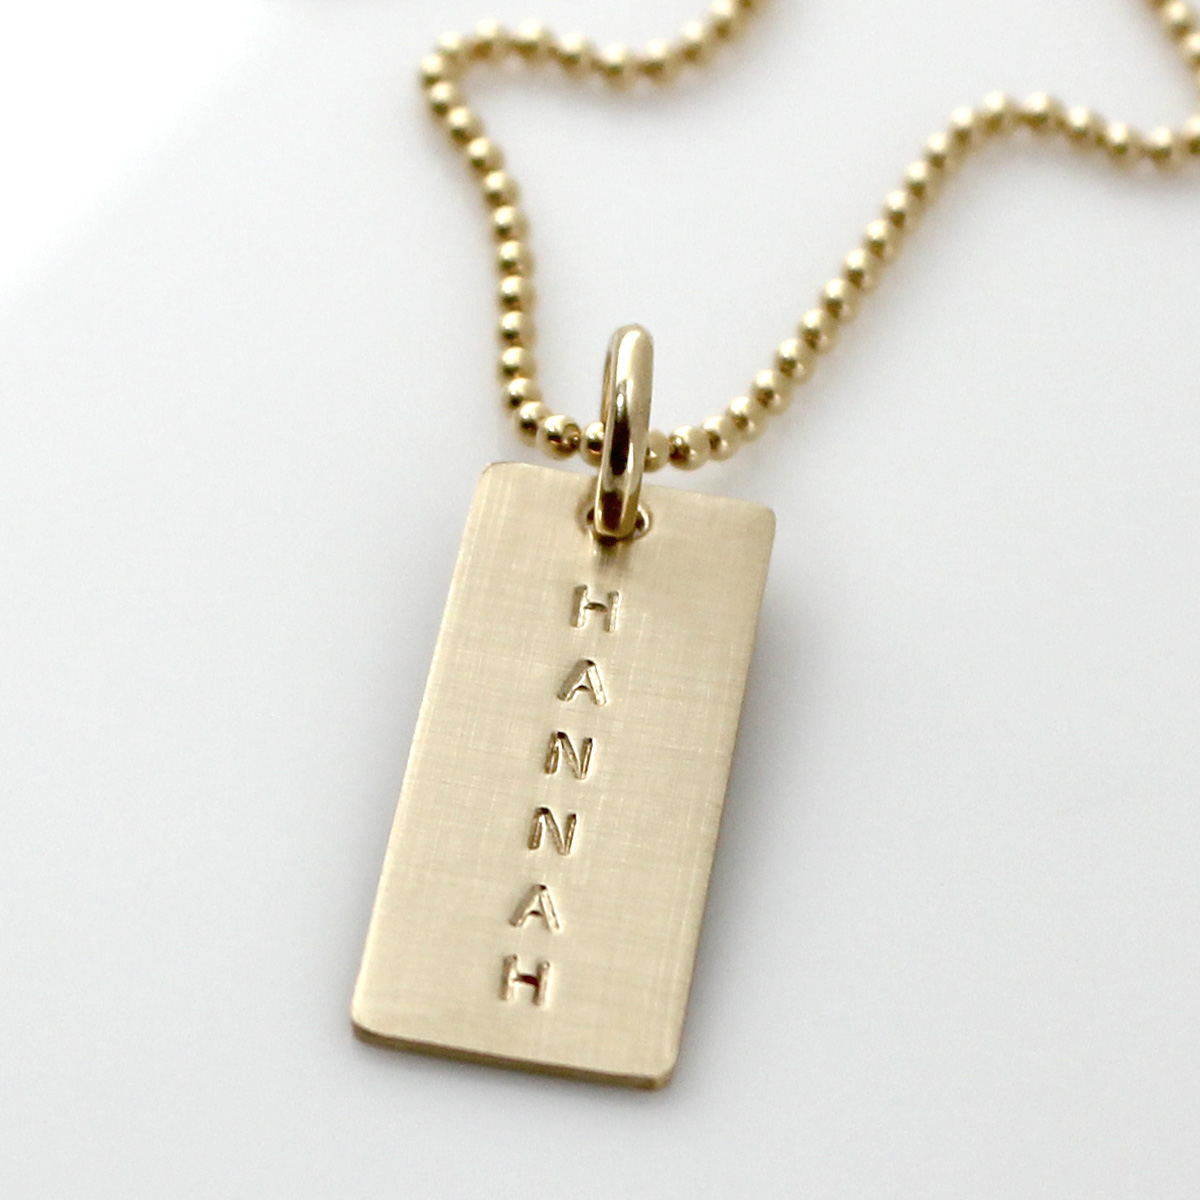 Simple Name Tag Necklace - Gold Filled Short Tag